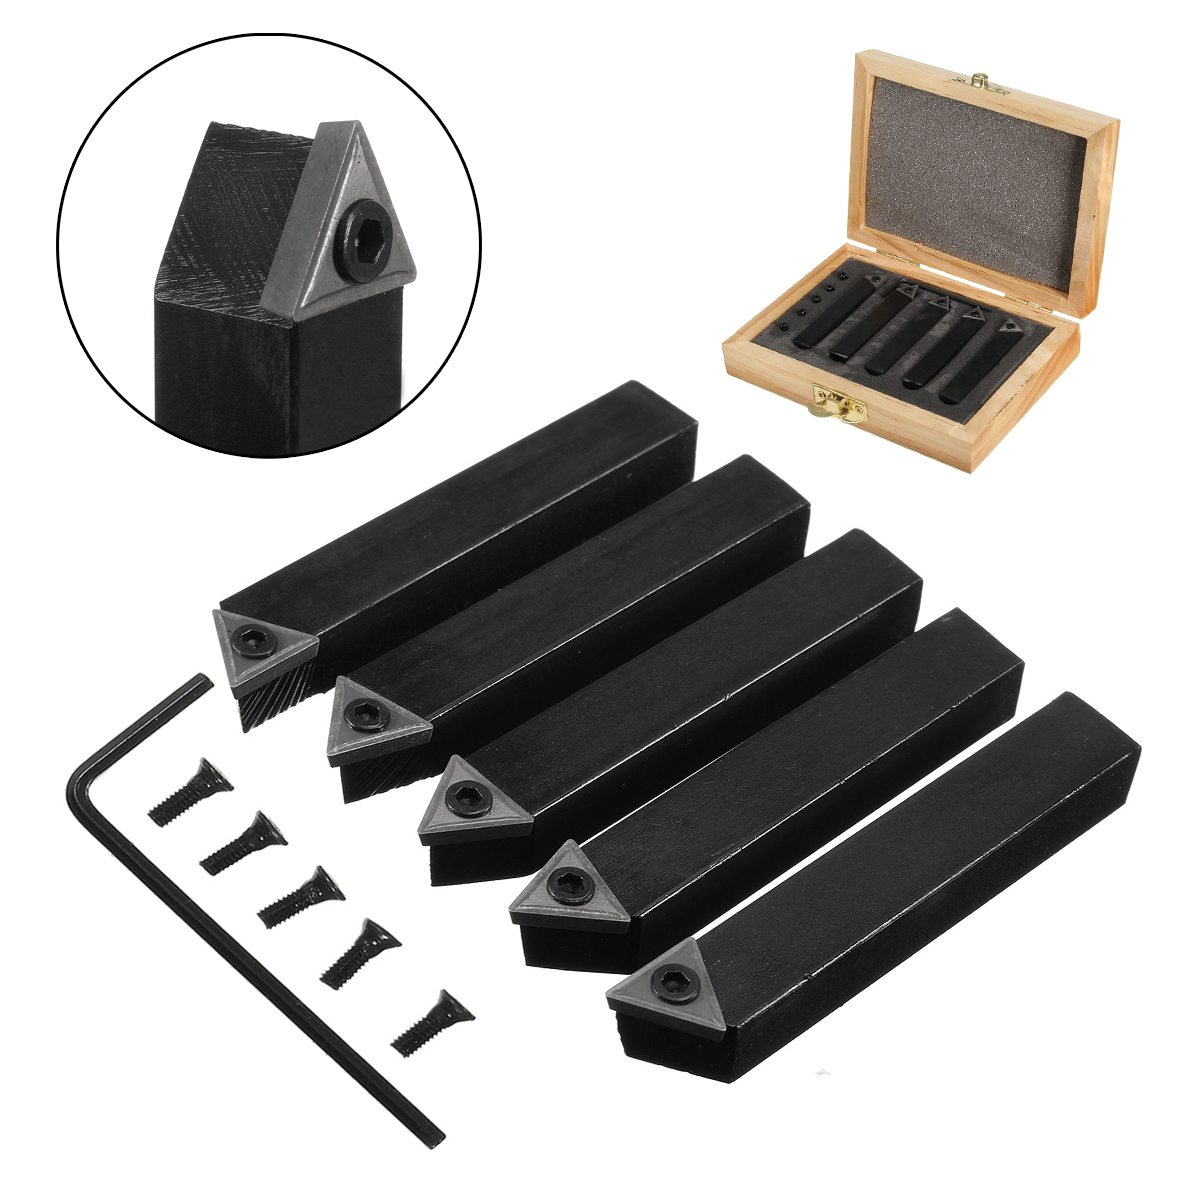 5Pcs 8mm(5/16) Indexable Carbide Tipped Lathe Cutter Tool Set For CNC Machine Style A B E Drop Forged with Indexable Tungsten 5pcs set new 3 8 tip carbide indexable turning tool set mayitr good hardness precision insert lathe tool bit